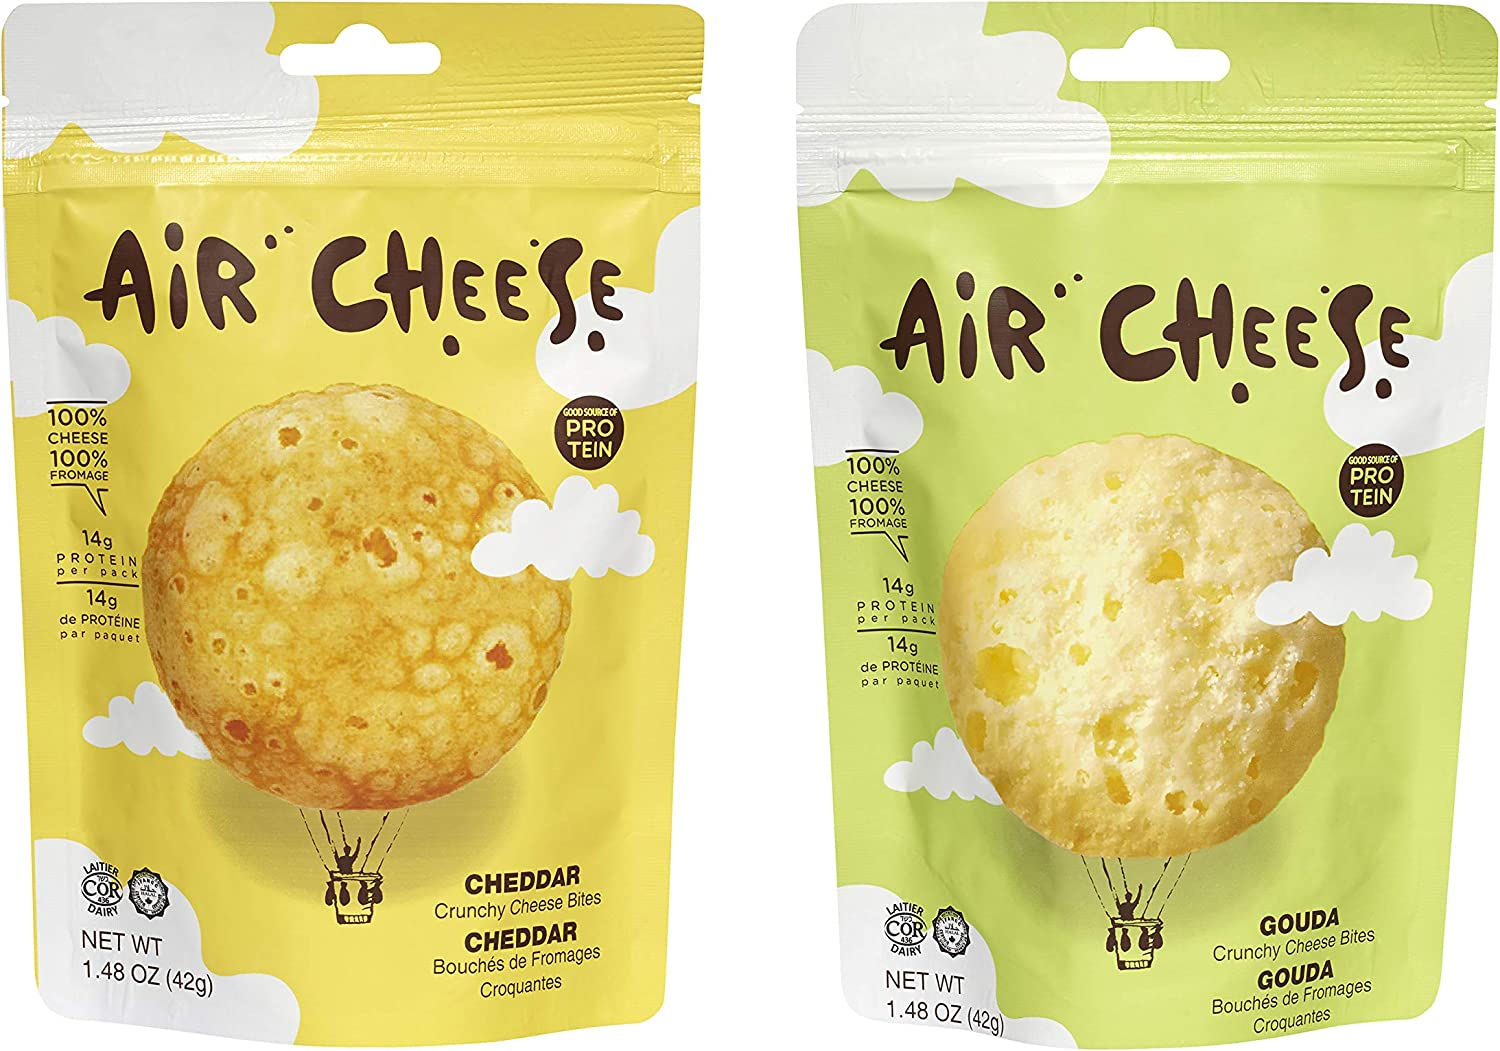 air cheese keto snacks variety pack high protein low carb snacks 100 cheese 2 pack variety 84 grams amazon ca grocery air cheese keto snacks variety pack high protein low carb snacks 100 cheese 2 pack variety 84 grams